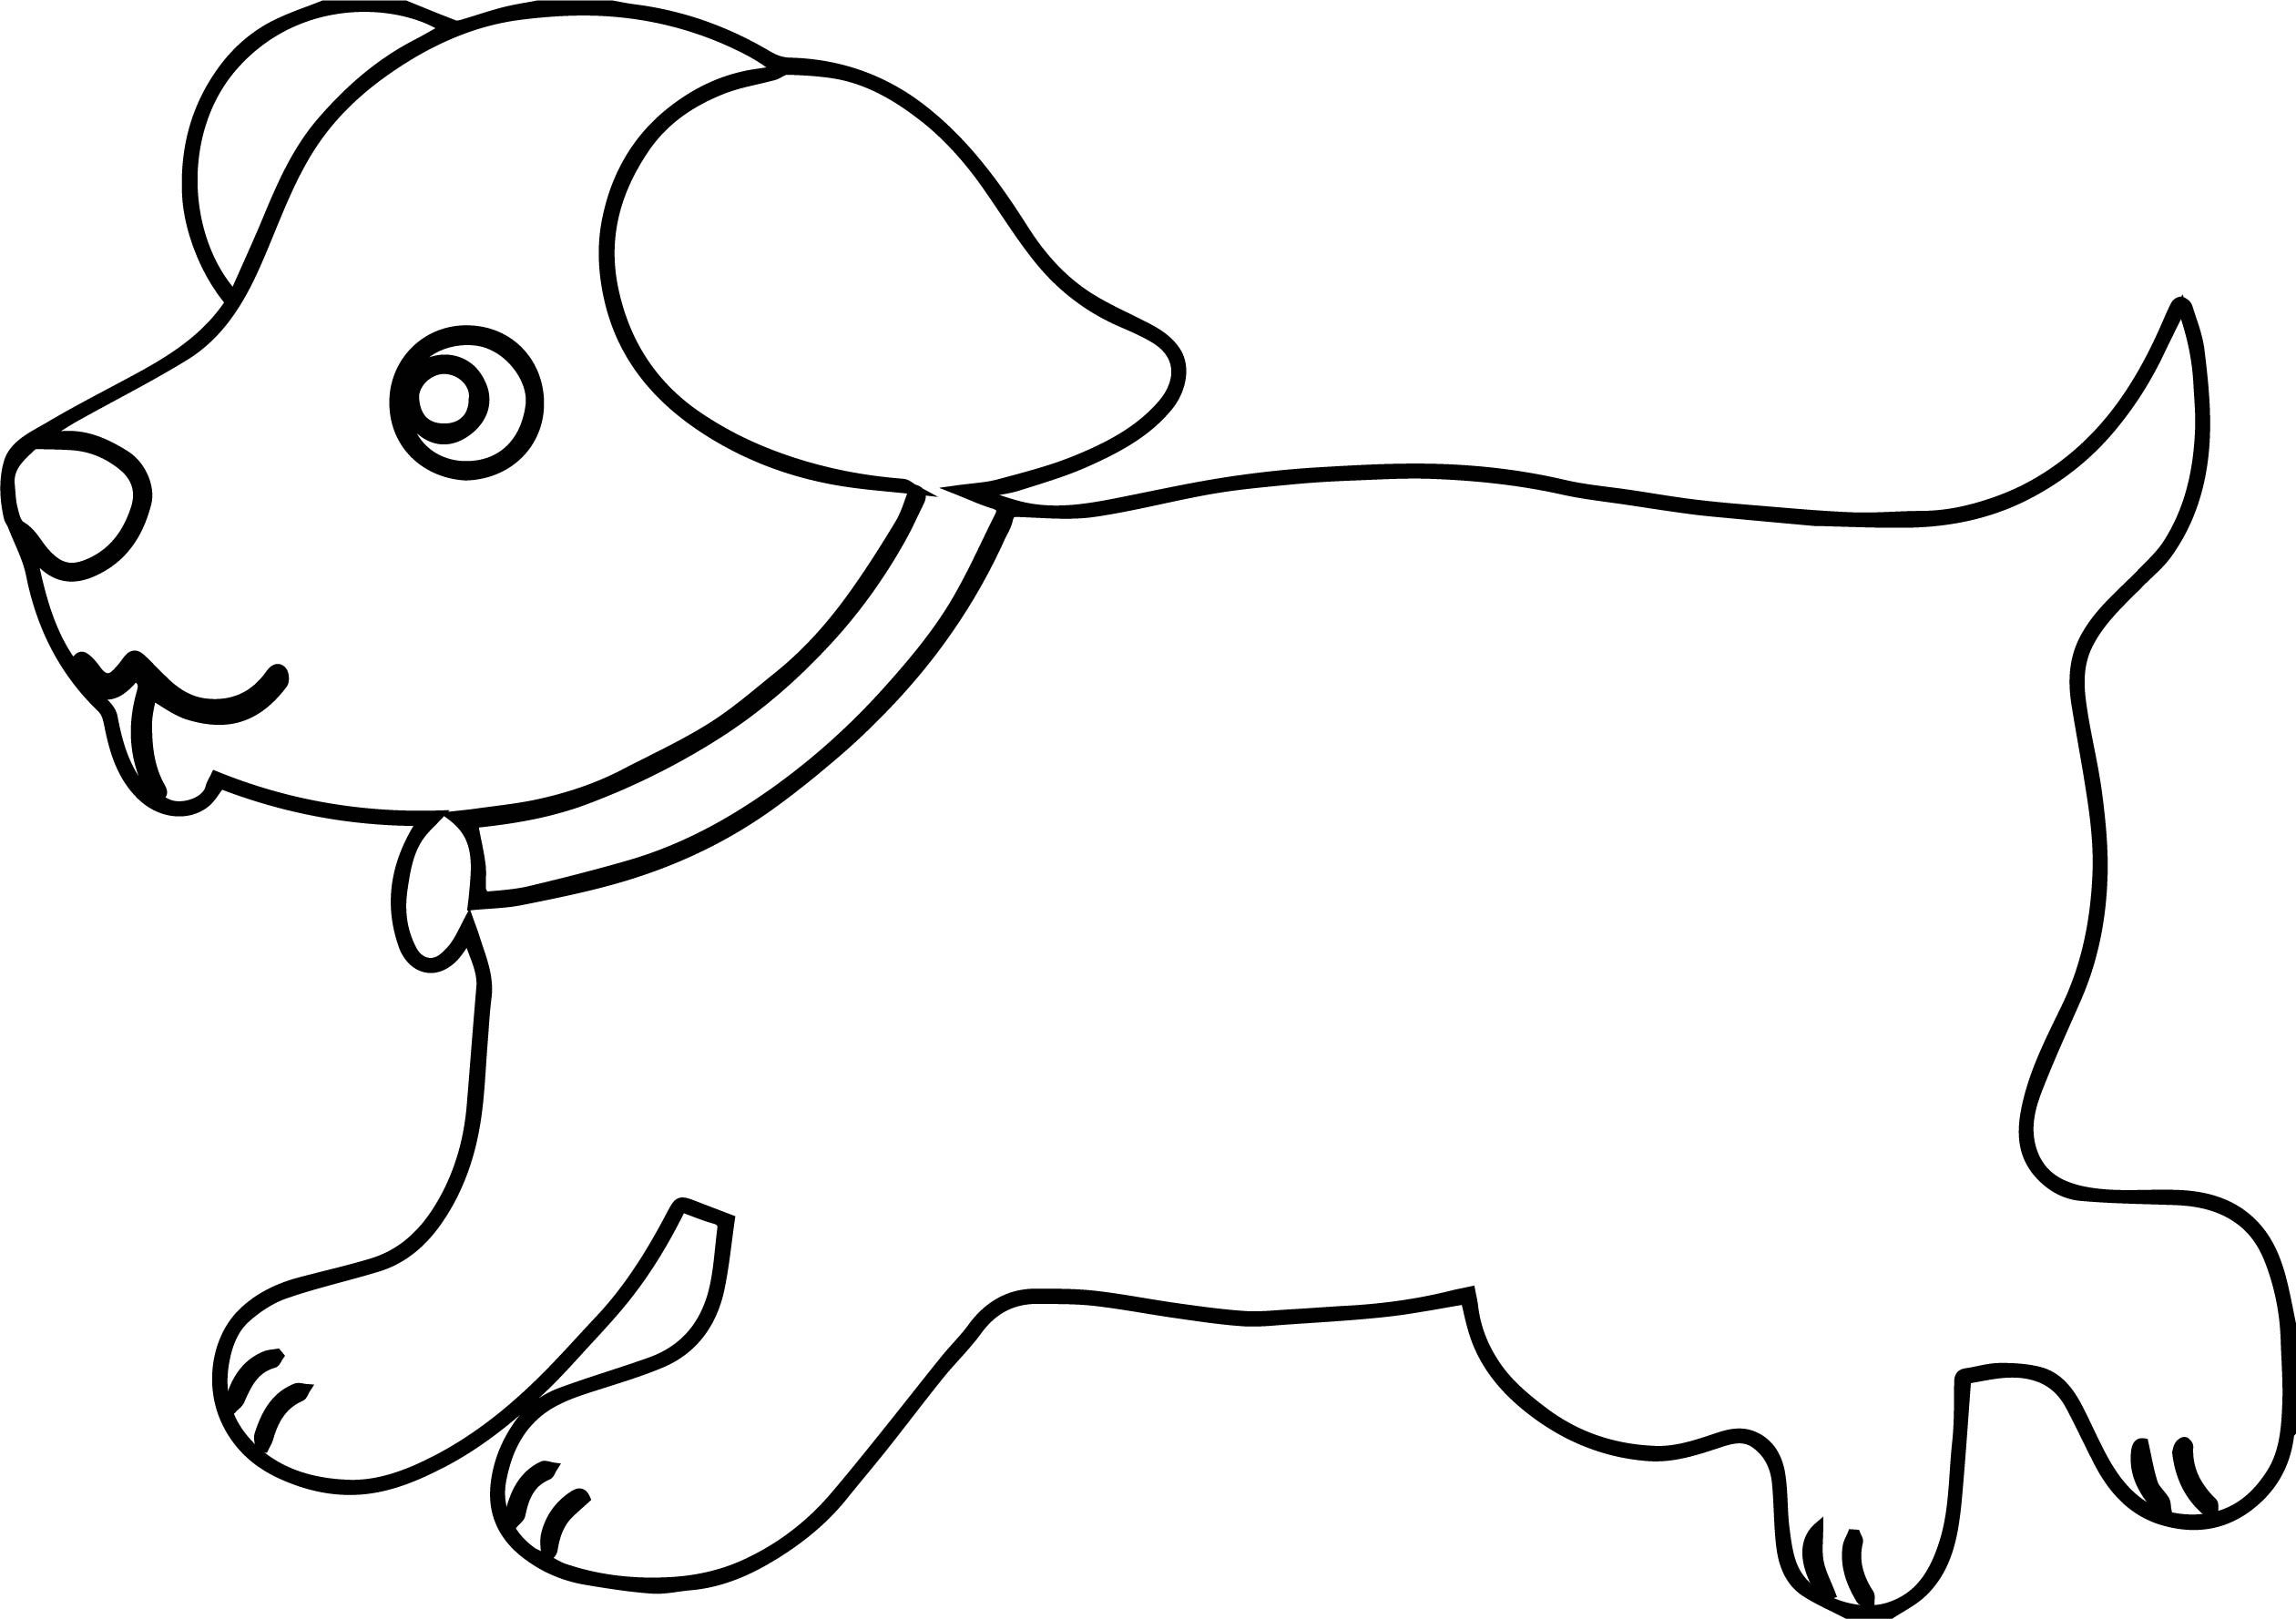 Dog Outline Coloring Page